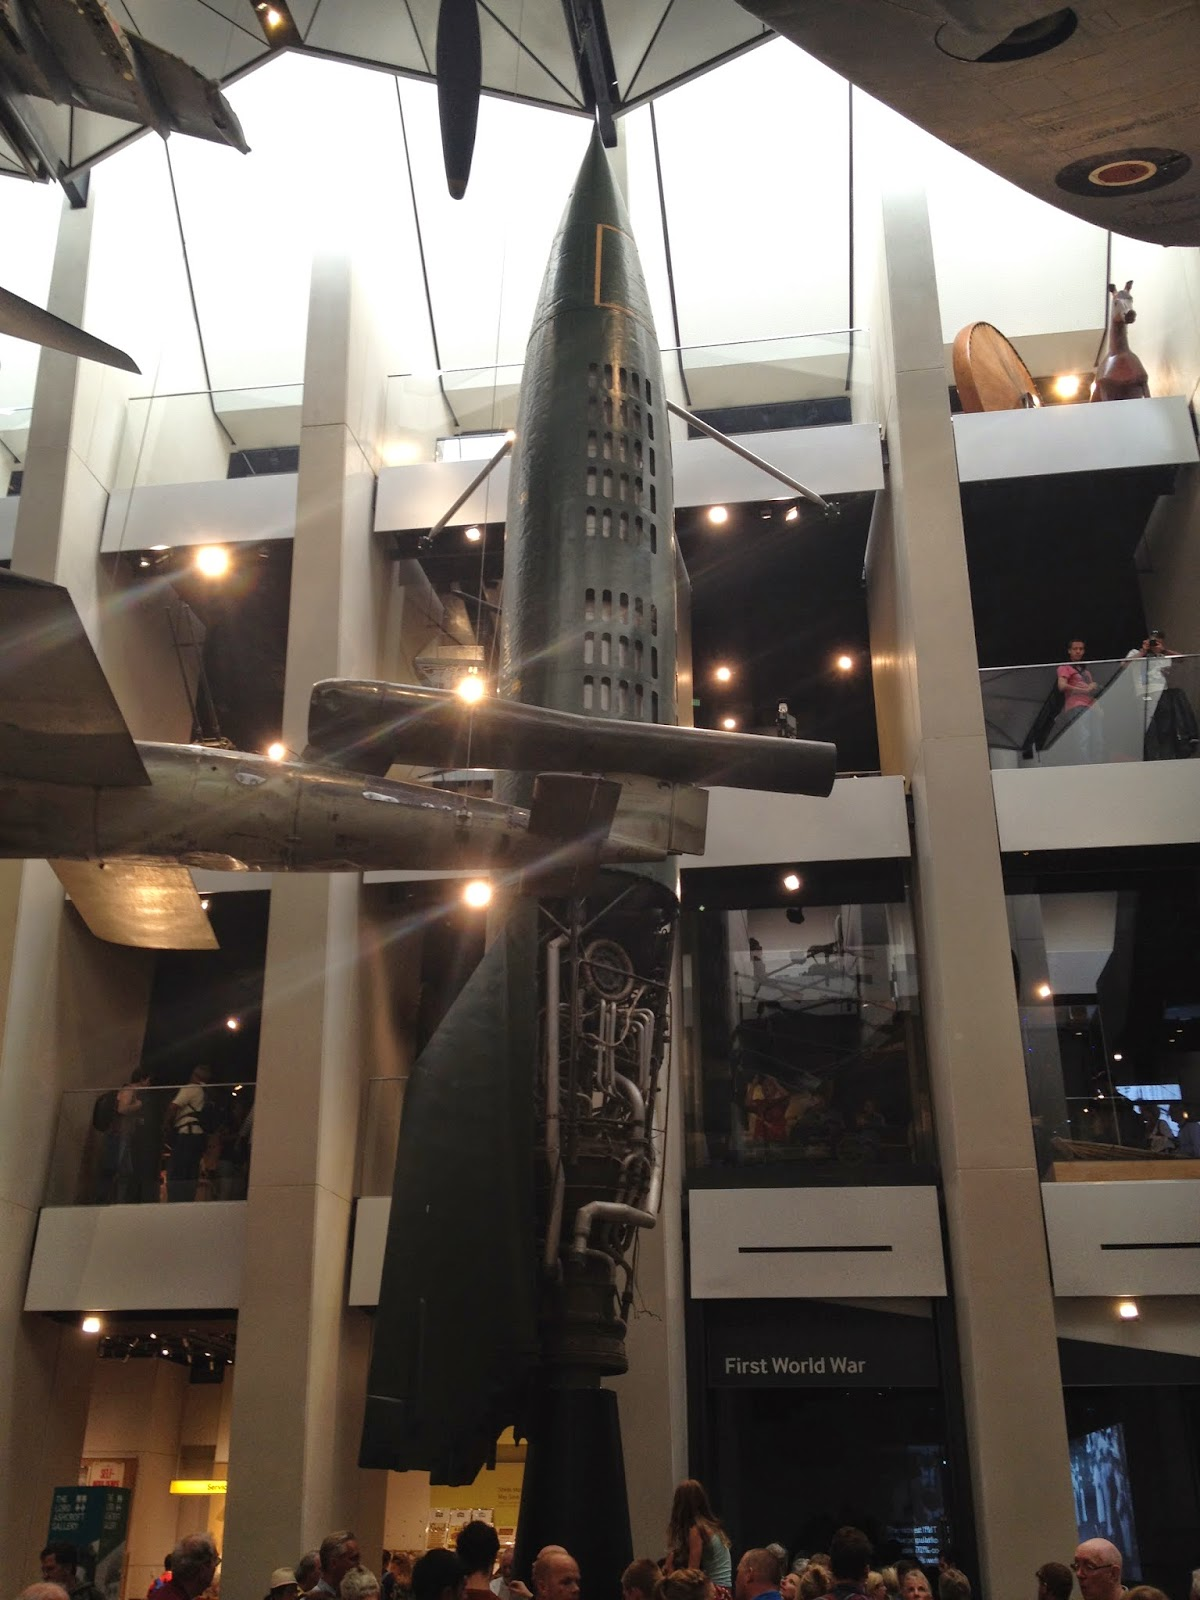 Imperial War Museum (photo credit: http://researchandramblings.blogspot.com/)